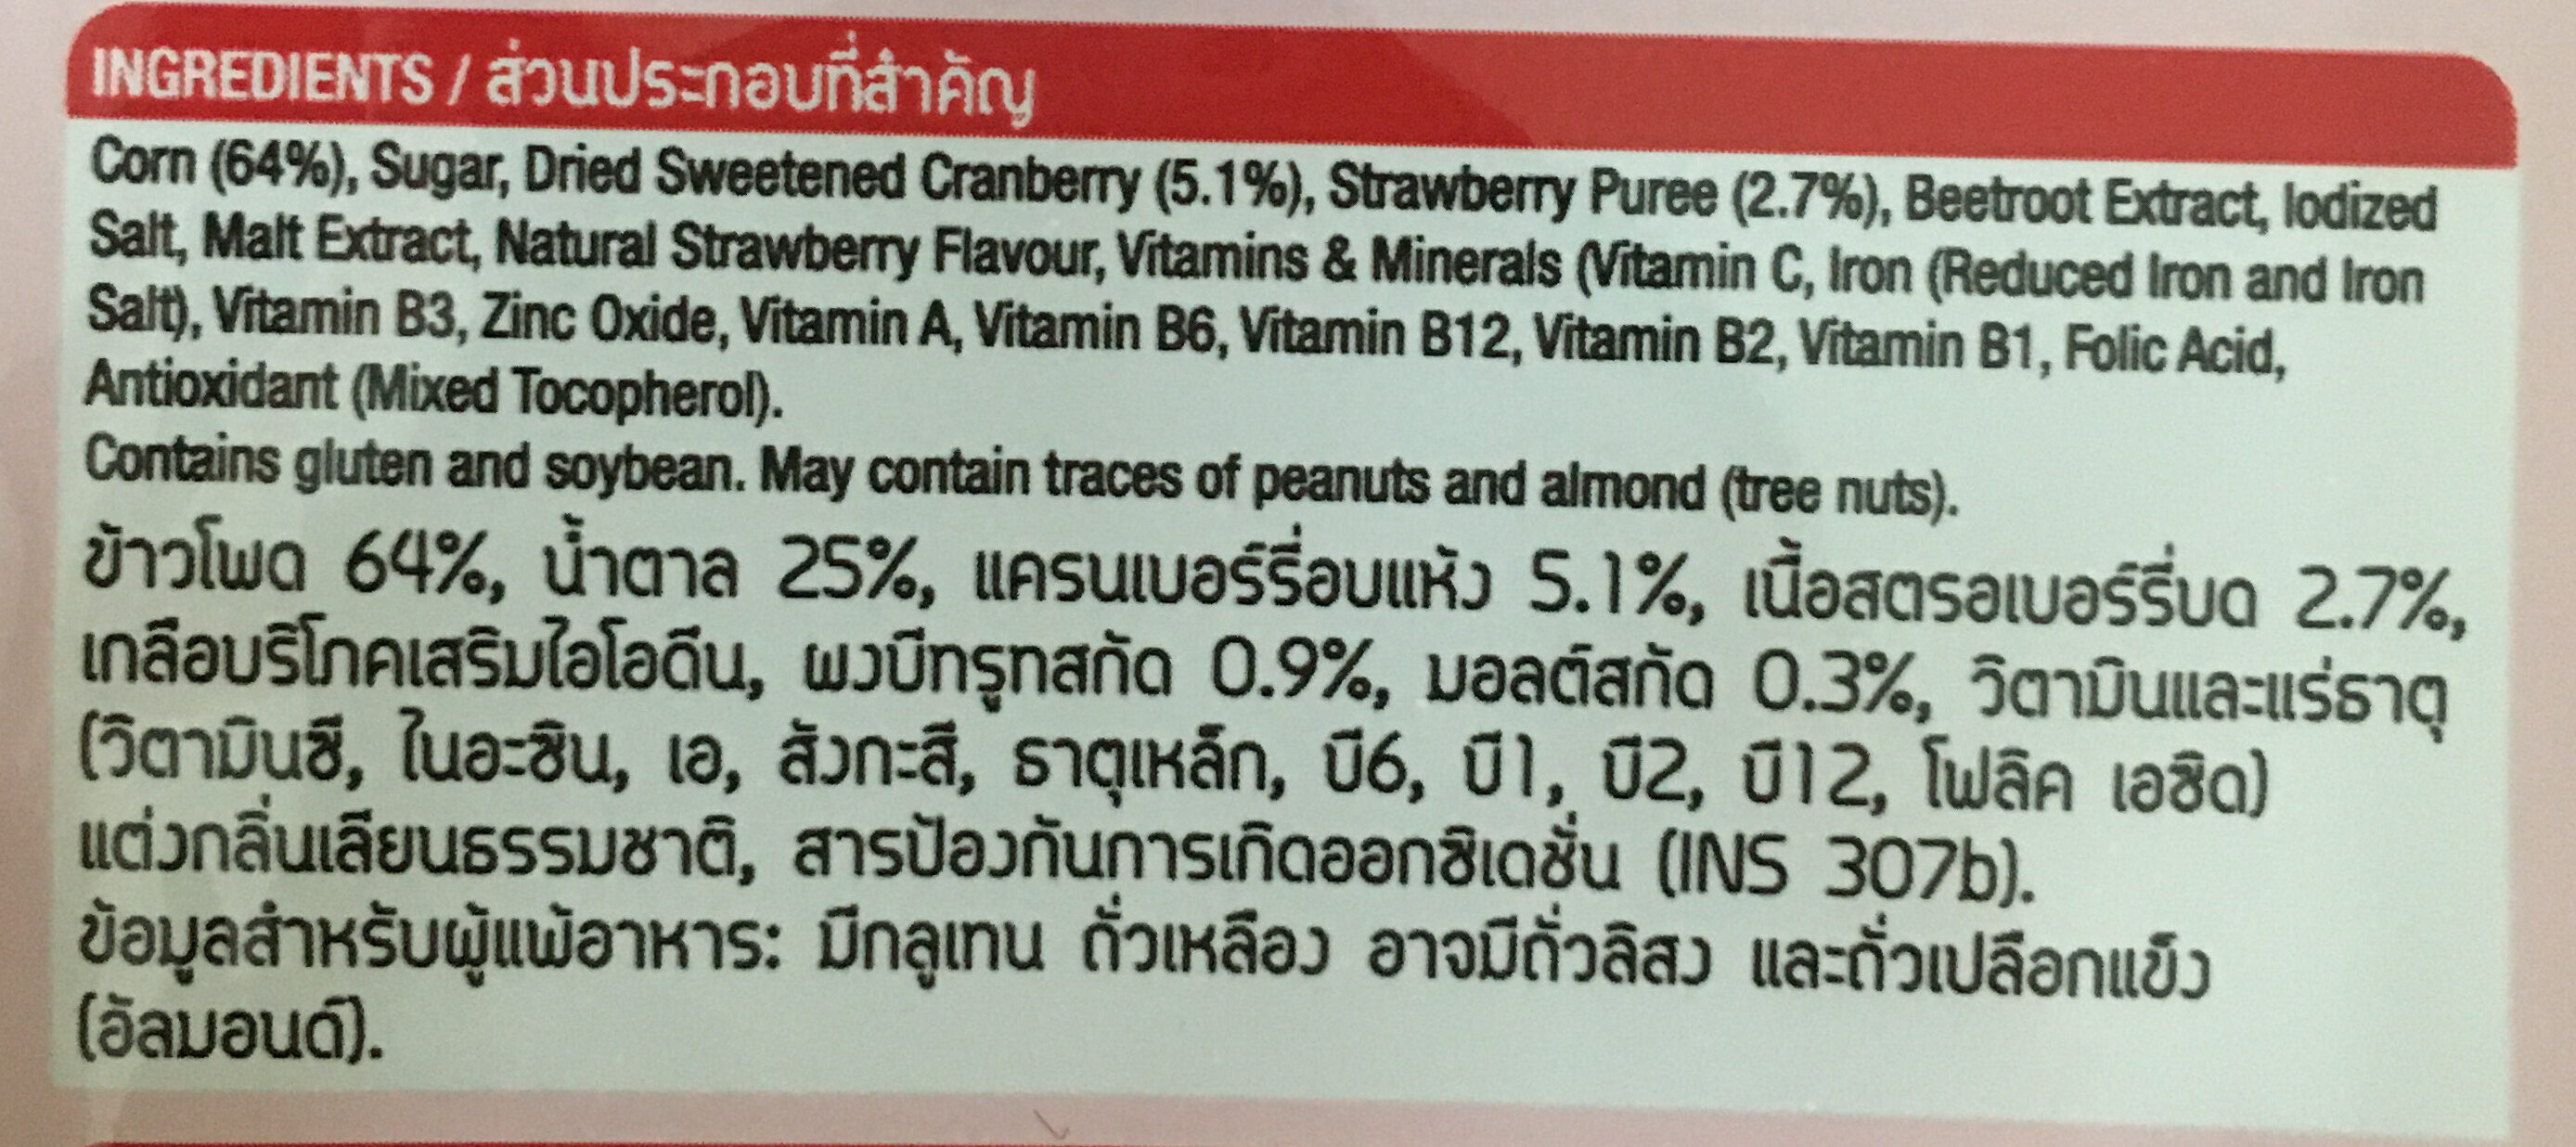 Real strawberry corn flakes - Ingredients